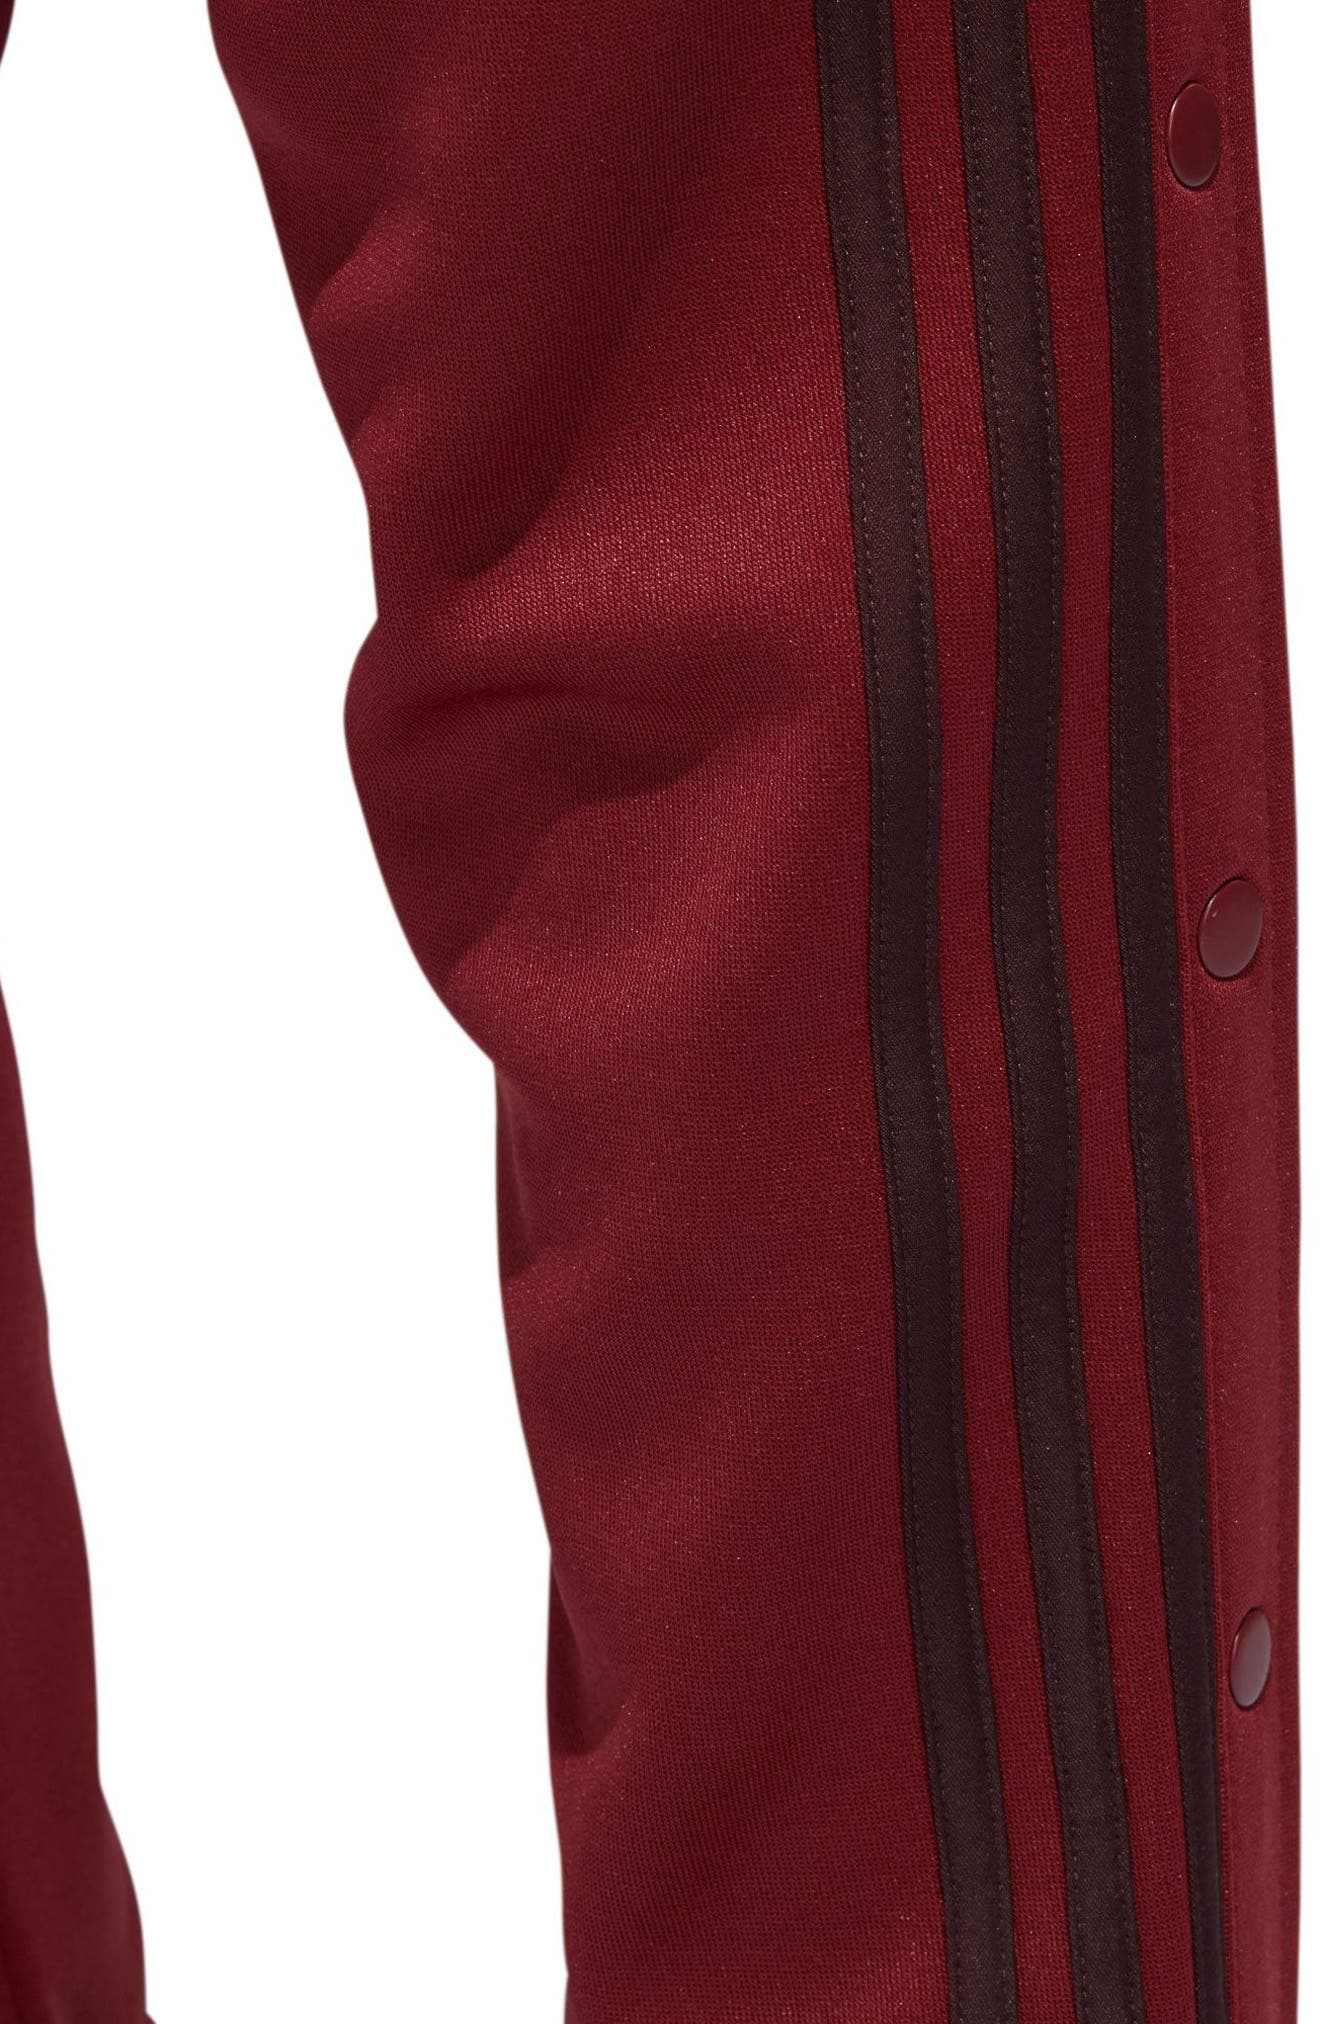 Tricot Snap Pants,                             Alternate thumbnail 13, color,                             NOBLE MAROON/ NIGHT RED